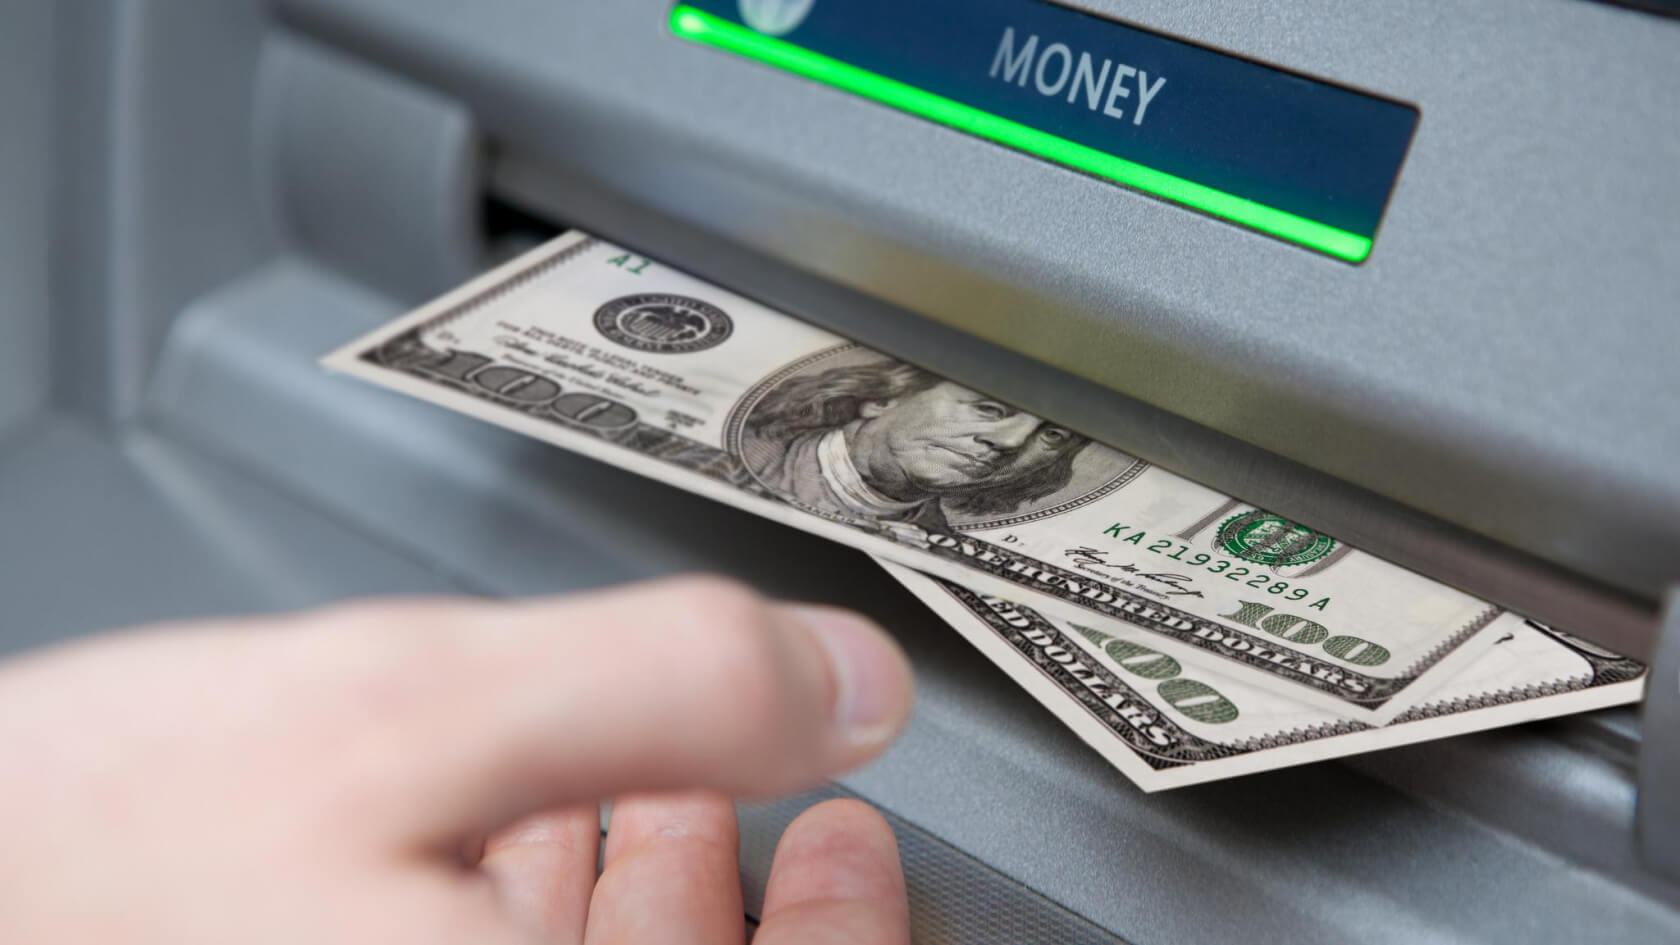 Jackpotting ATM attacks arrive in the US